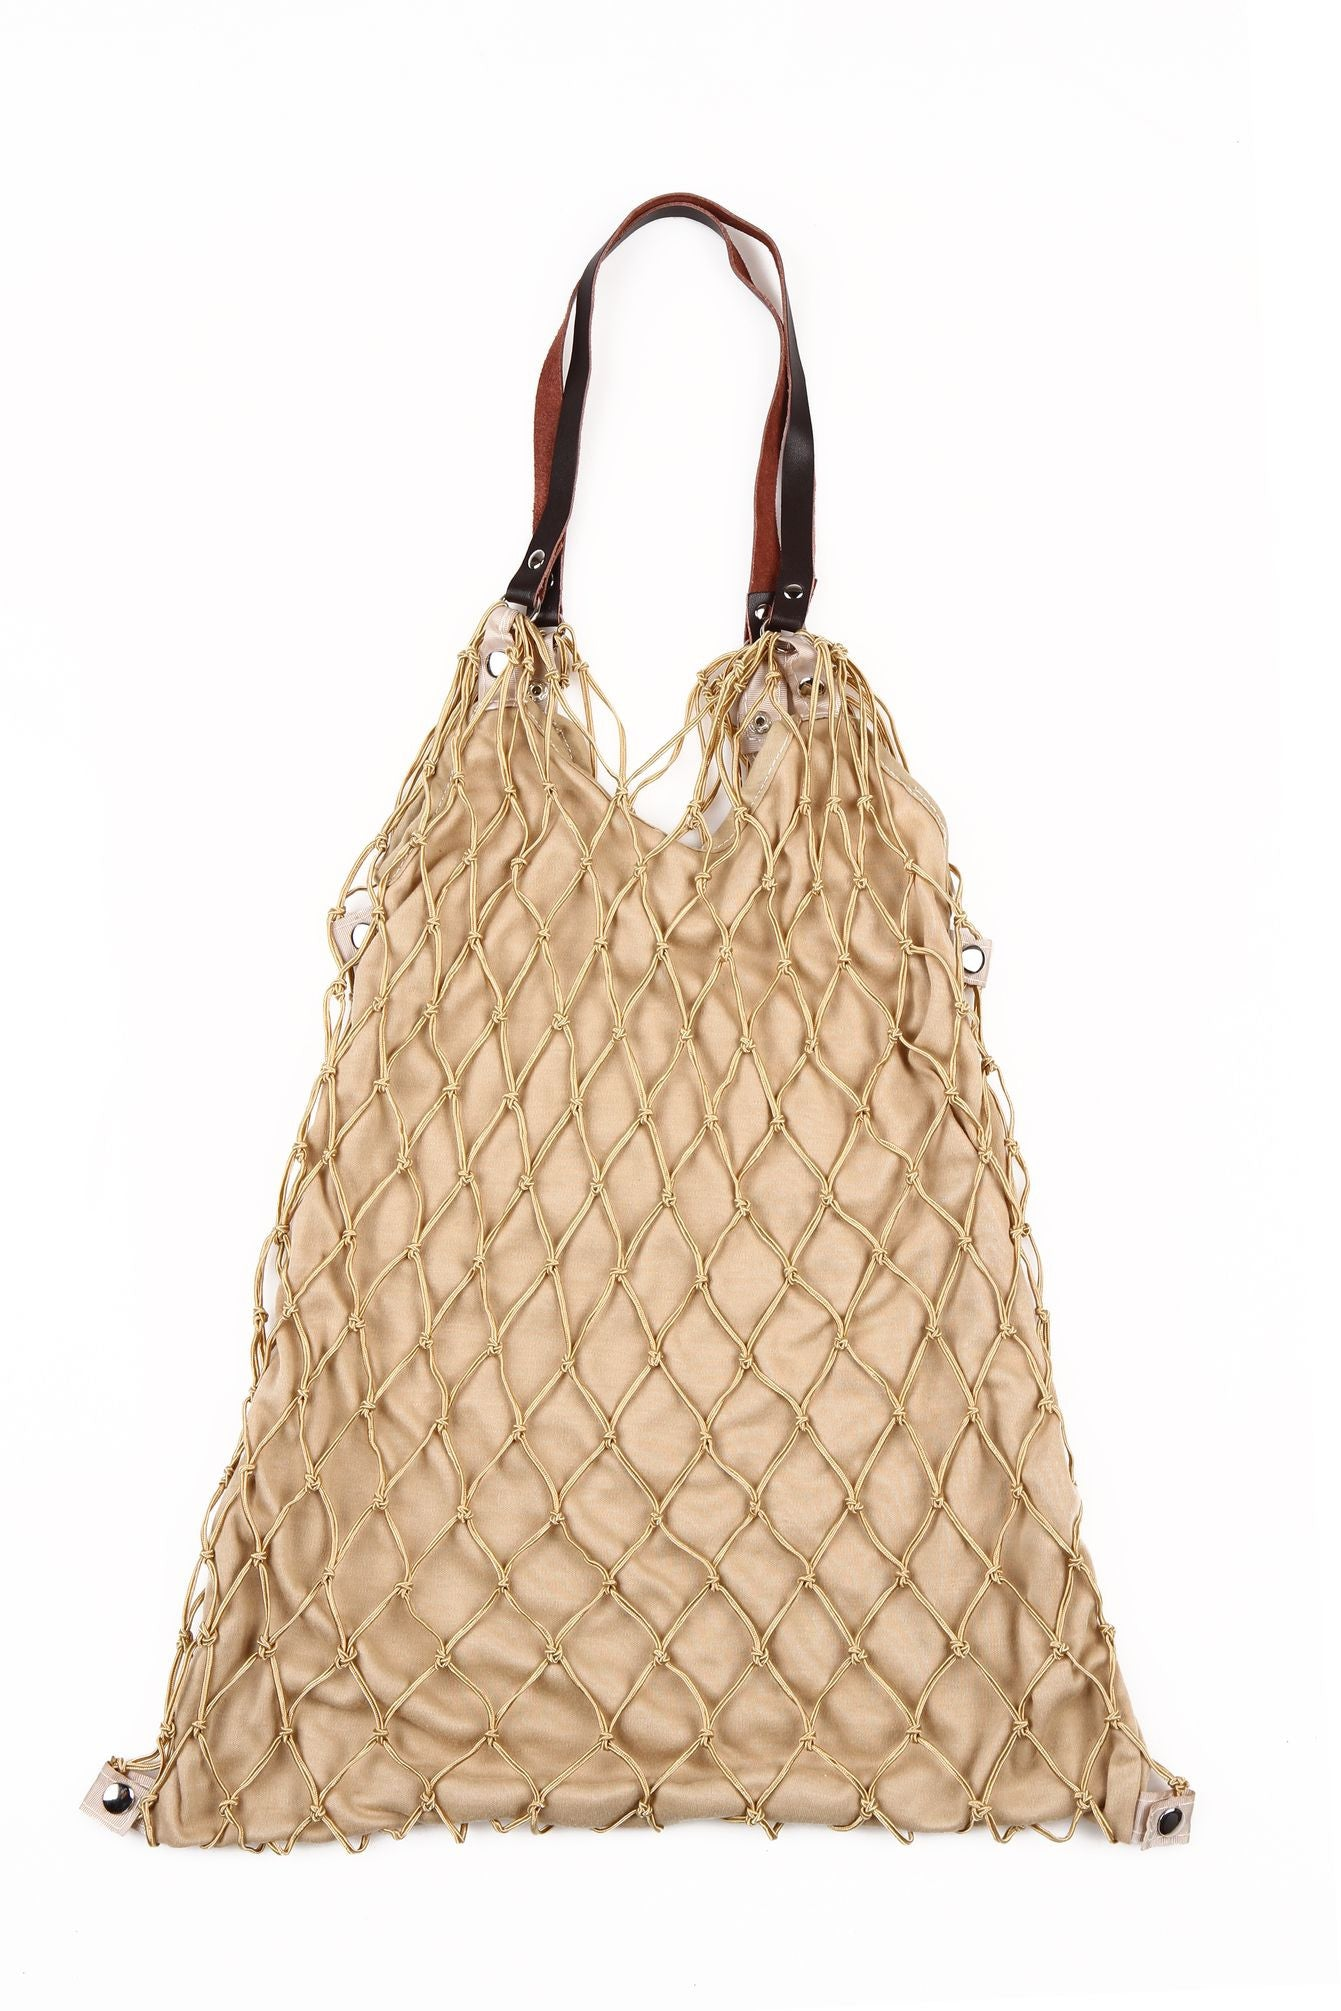 Blusac | Sandy Gold Tote תיק